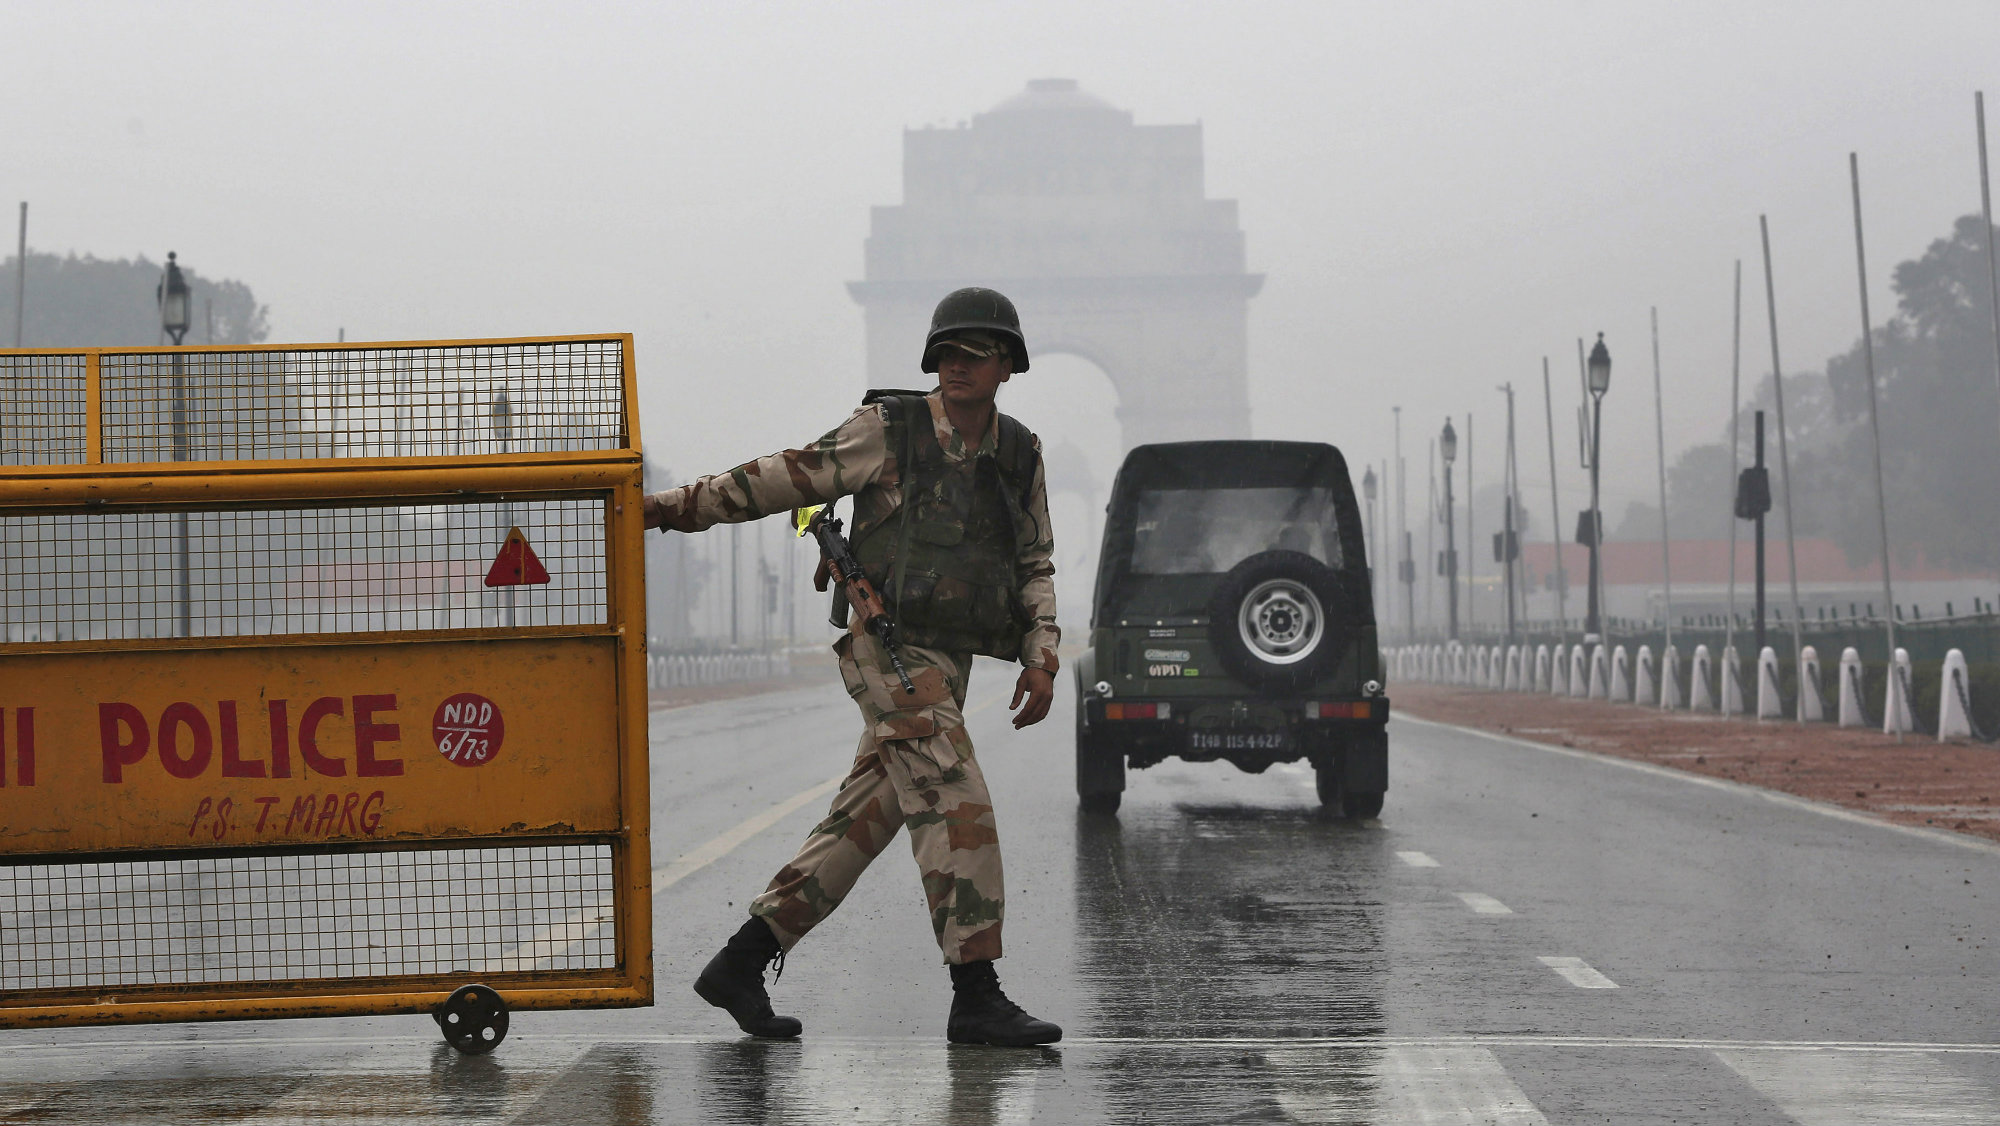 An Indian security personnel pulls a barricade to block the road in front of India Gate as it rains in New Delhi January 22, 2015. India's capital will turn into a virtual fortress for U.S. President Barack Obama's visit this weekend, with heightened security measures, including an extended no-fly zone, to protect the world's most powerful leader. REUTERS/Adnan Abidi (INDIA - Tags: MILITARY ANNIVERSARY POLITICS)